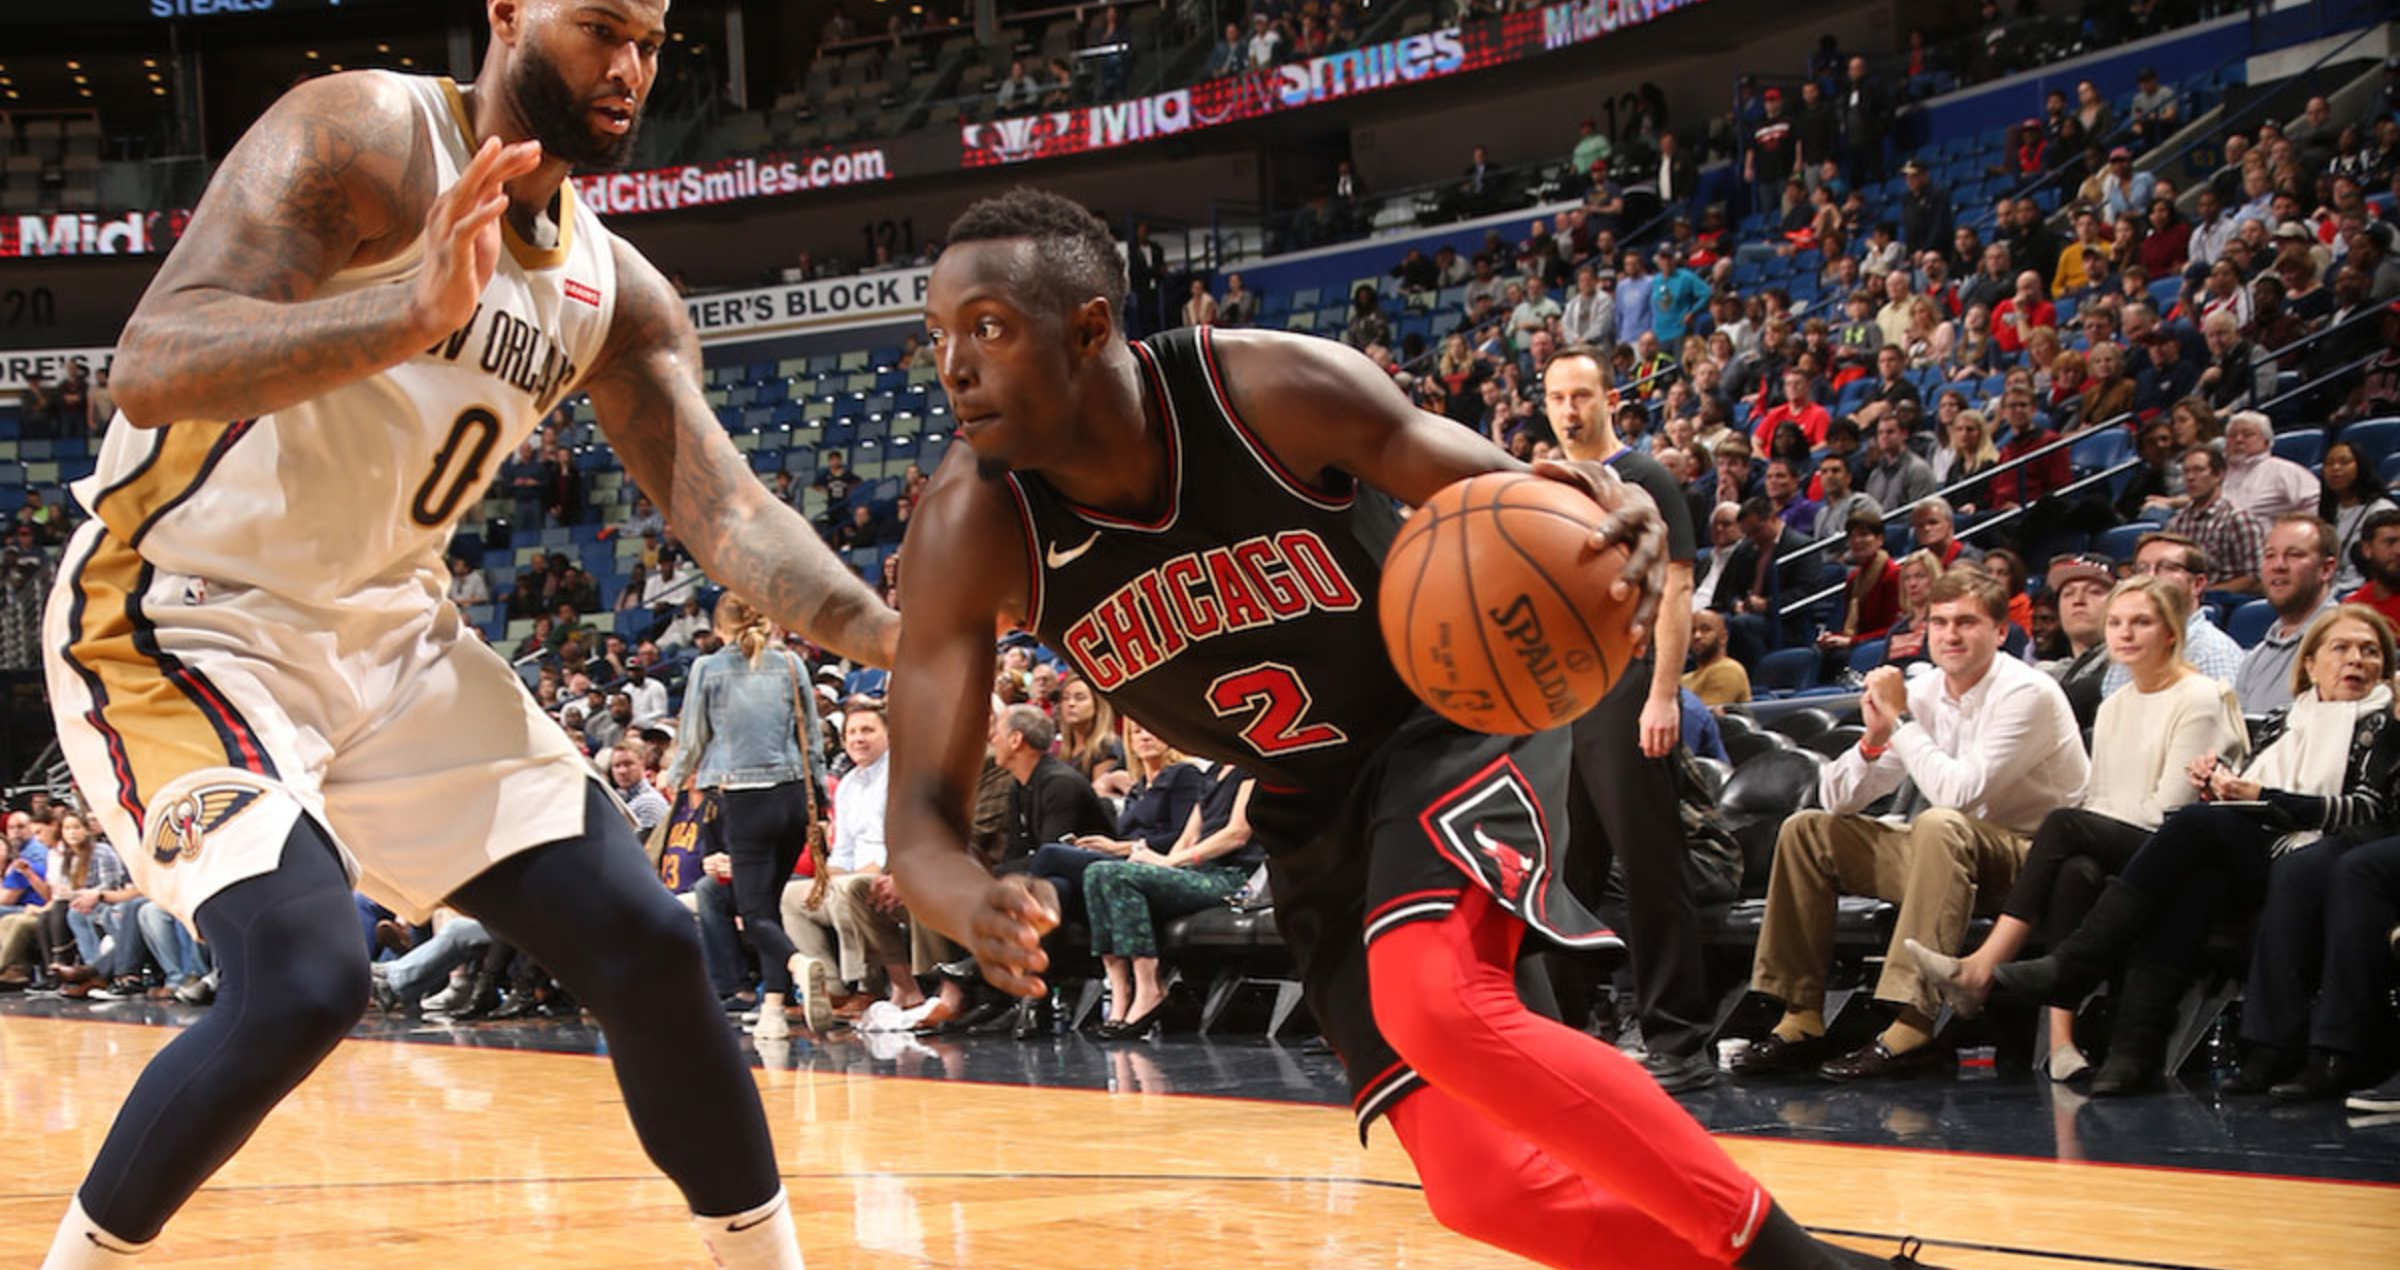 Jerian Grant #2 of the Chicago Bulls handles the ball